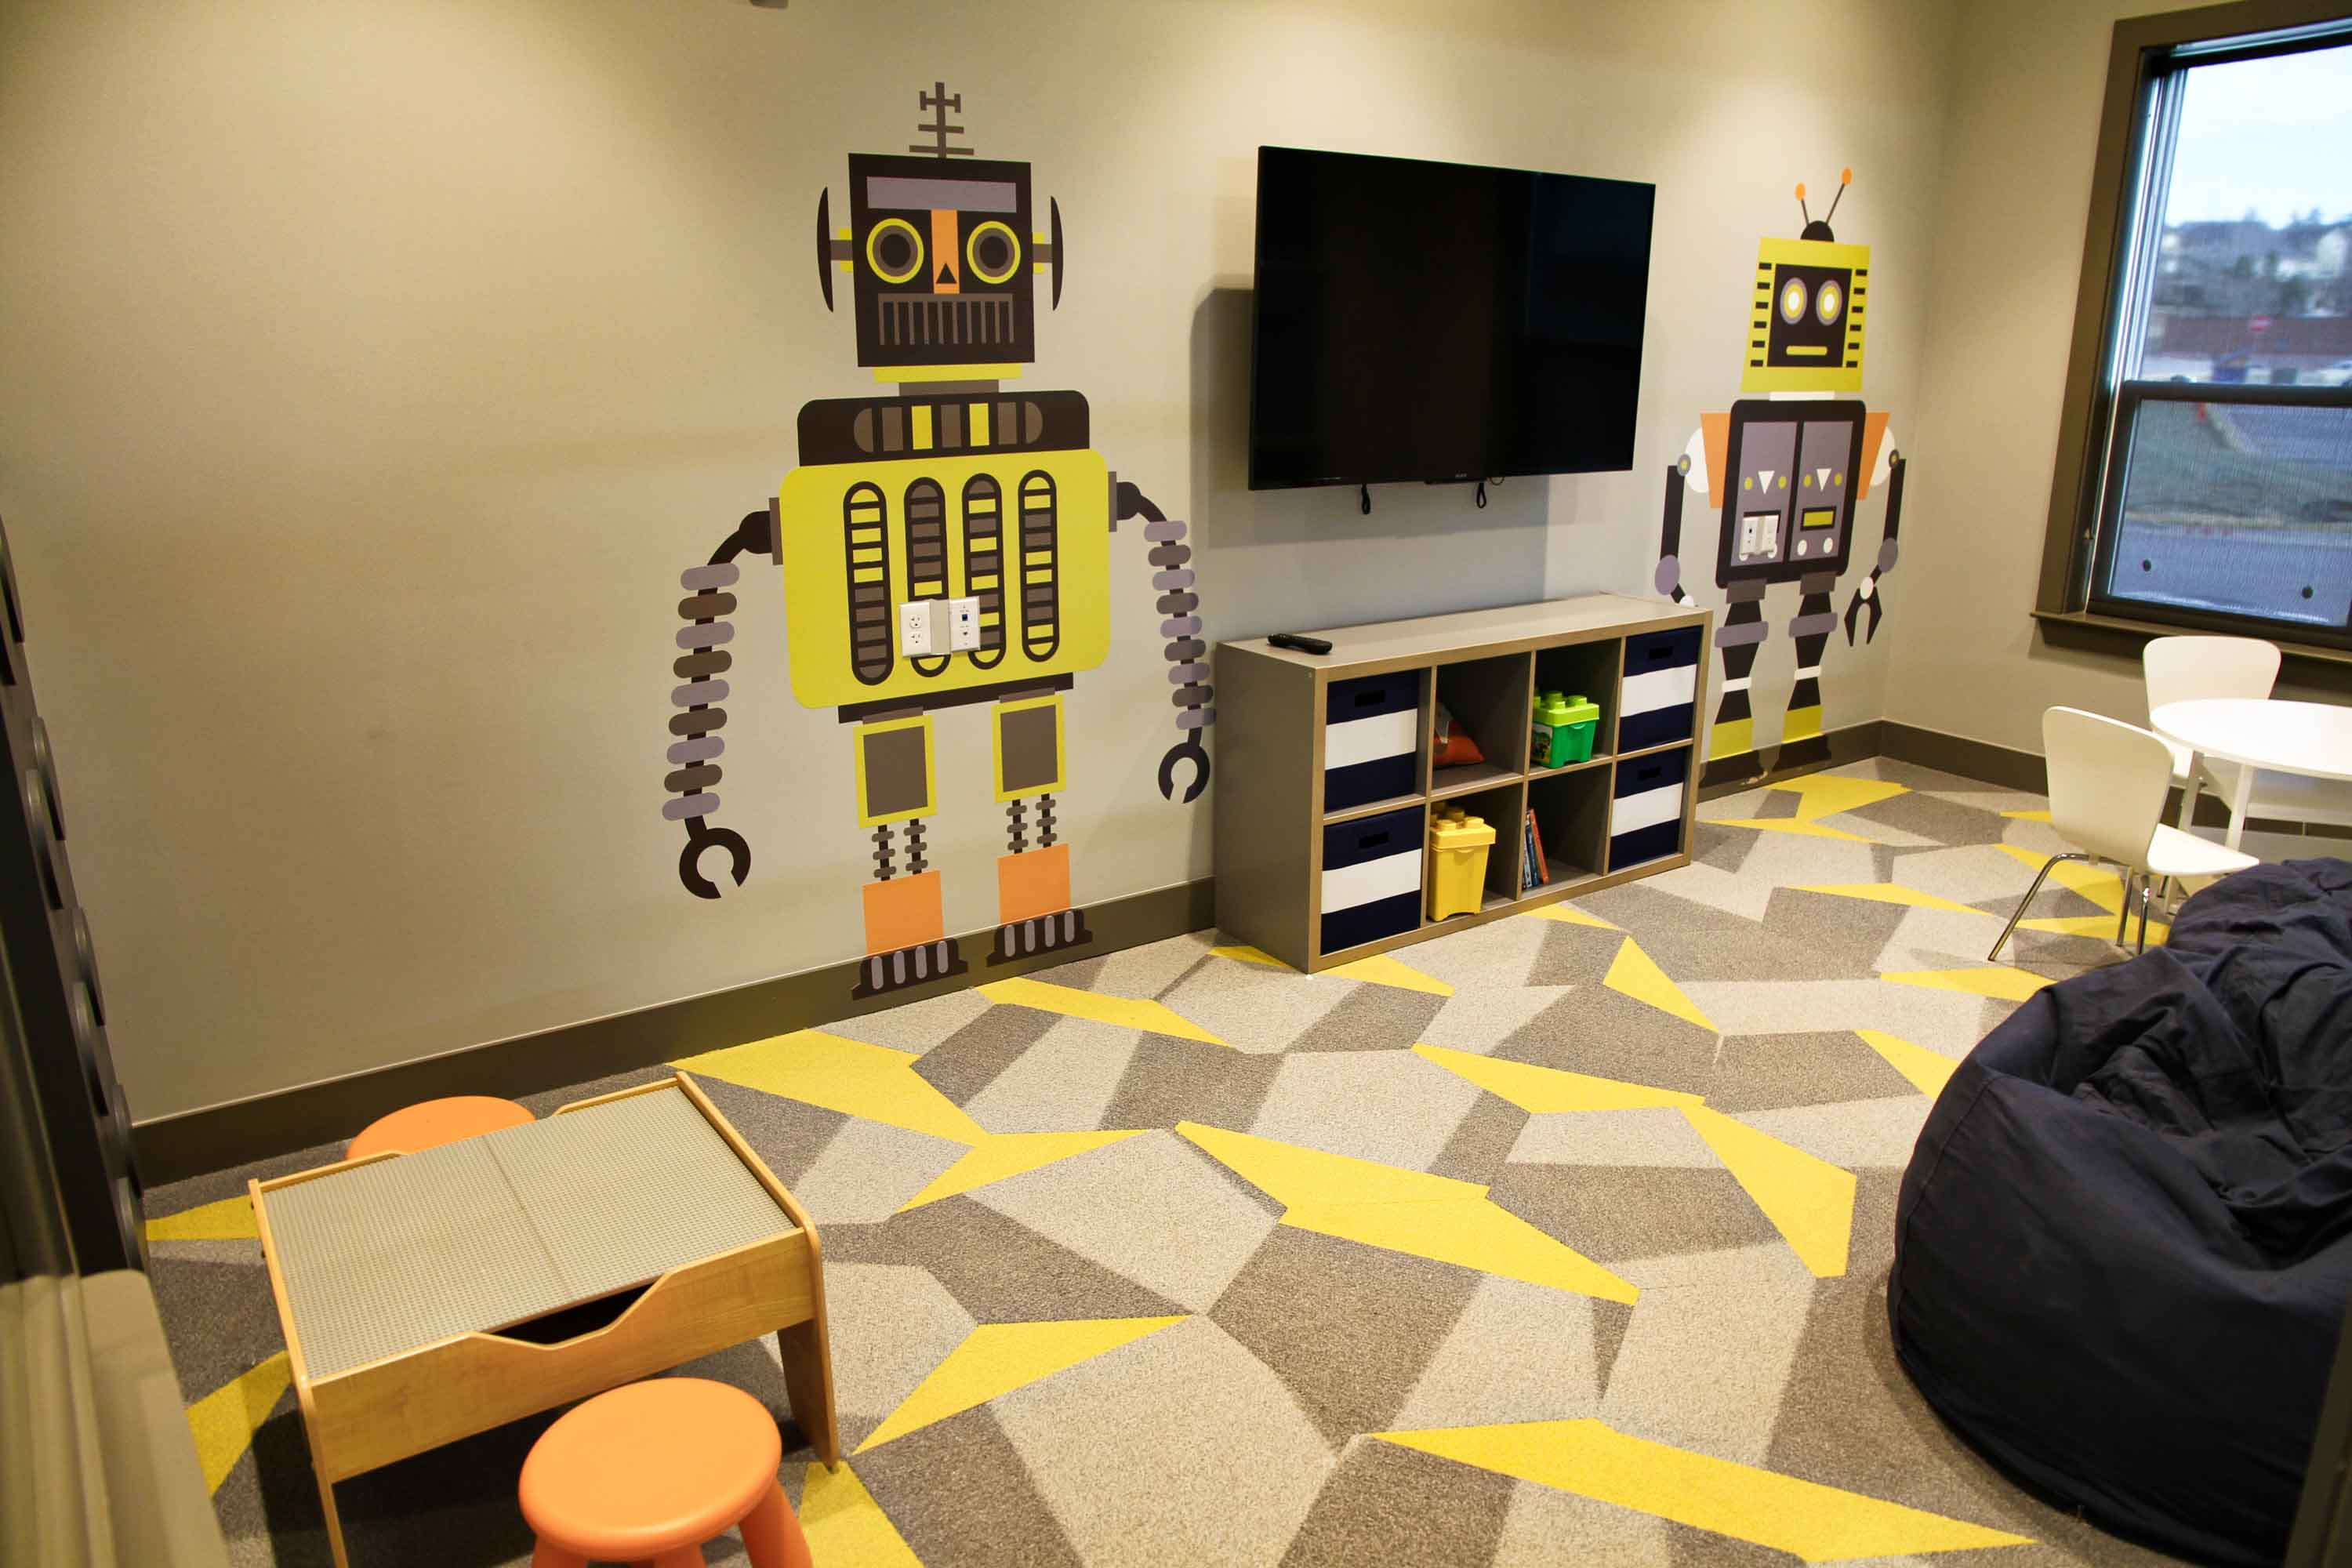 Childrens play area with robot wall graphics, geometric pattern carpet, wall mounted TV and large beanbag chair.